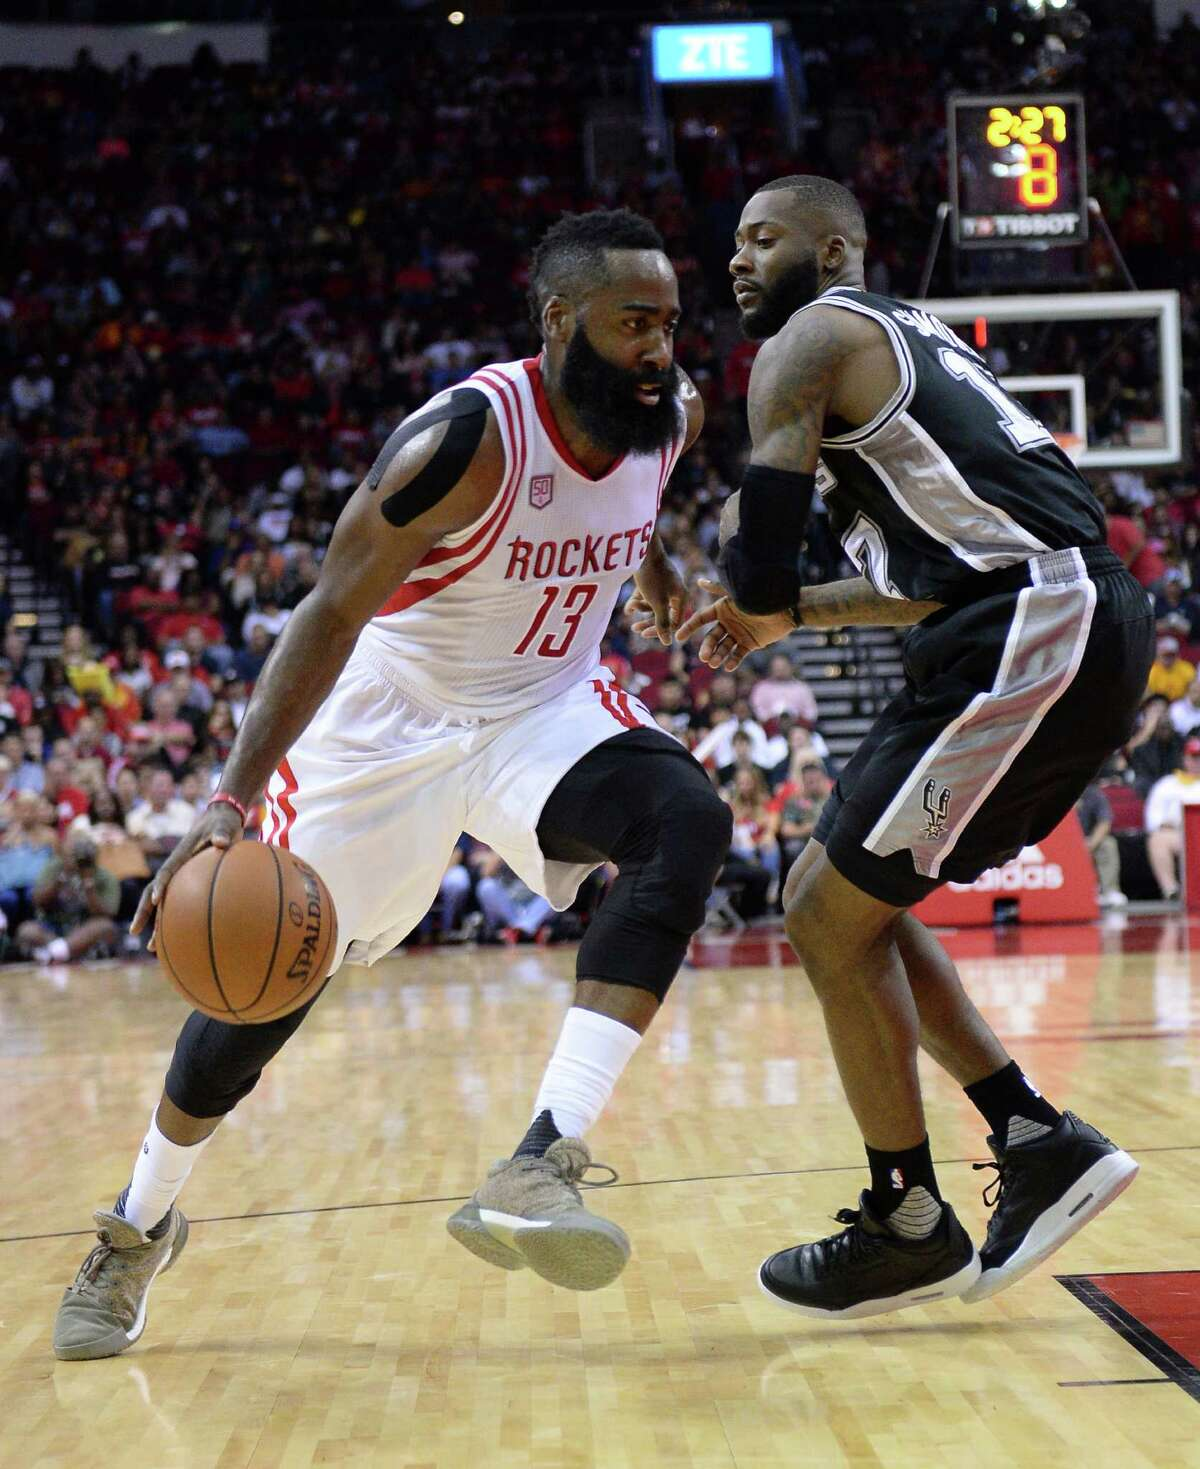 Houston Rockets guard James Harden (13) drives against San Antonio Spurs forward Jonathon Simmons (17) in the first half of an NBA basketball game on Saturday, Nov. 12, 2016, in Houston. (AP Photo/George Bridges)